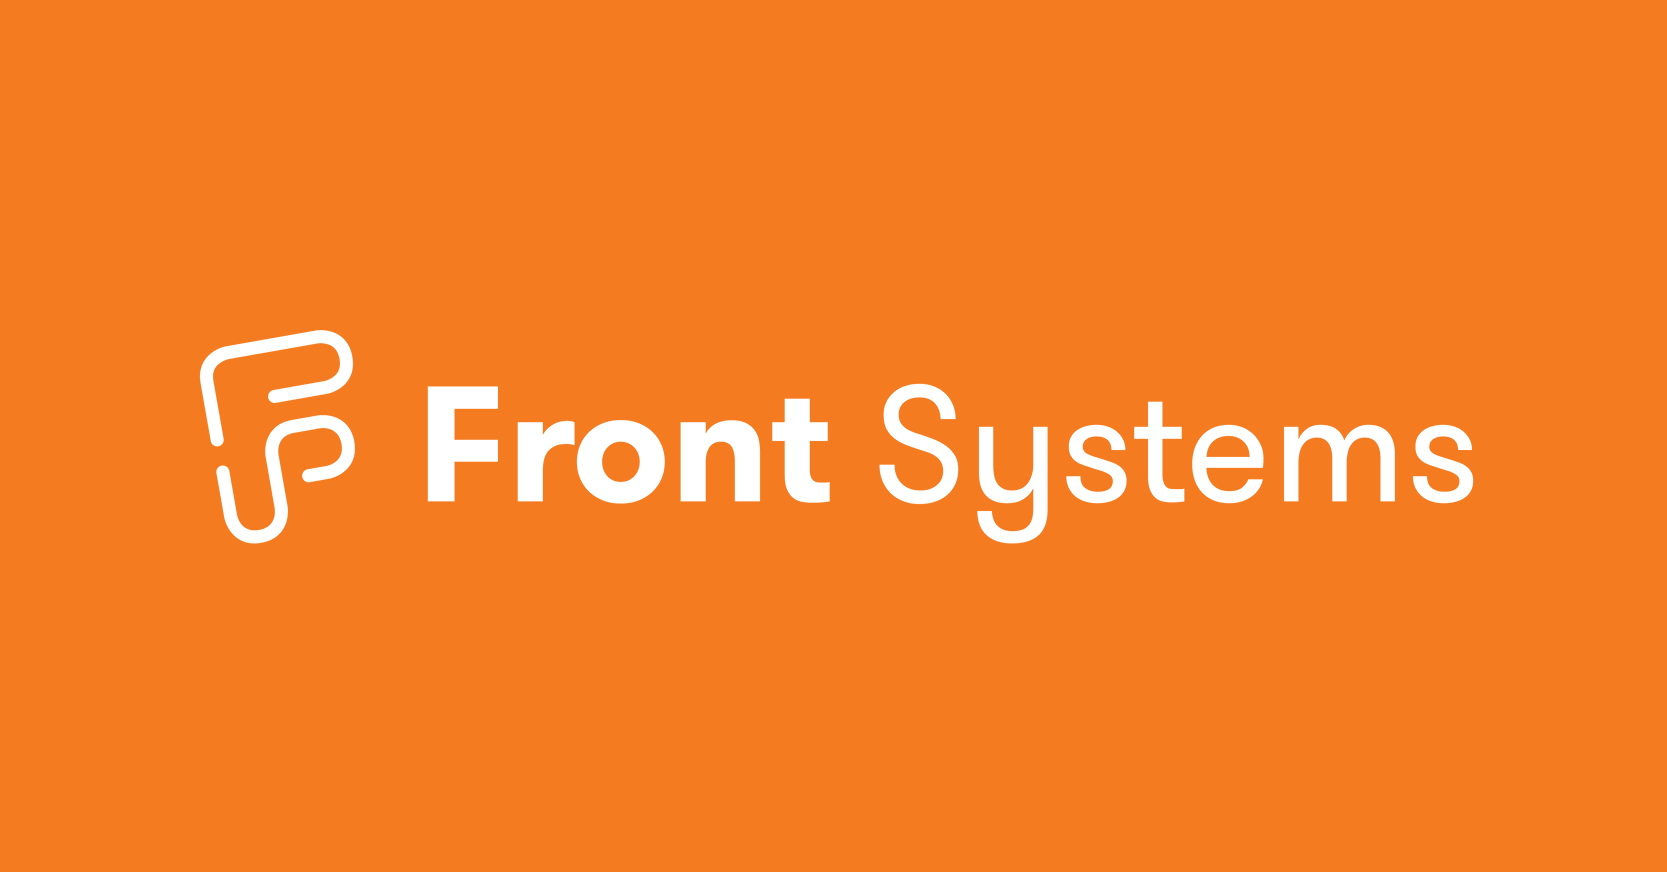 POS systemet Front system